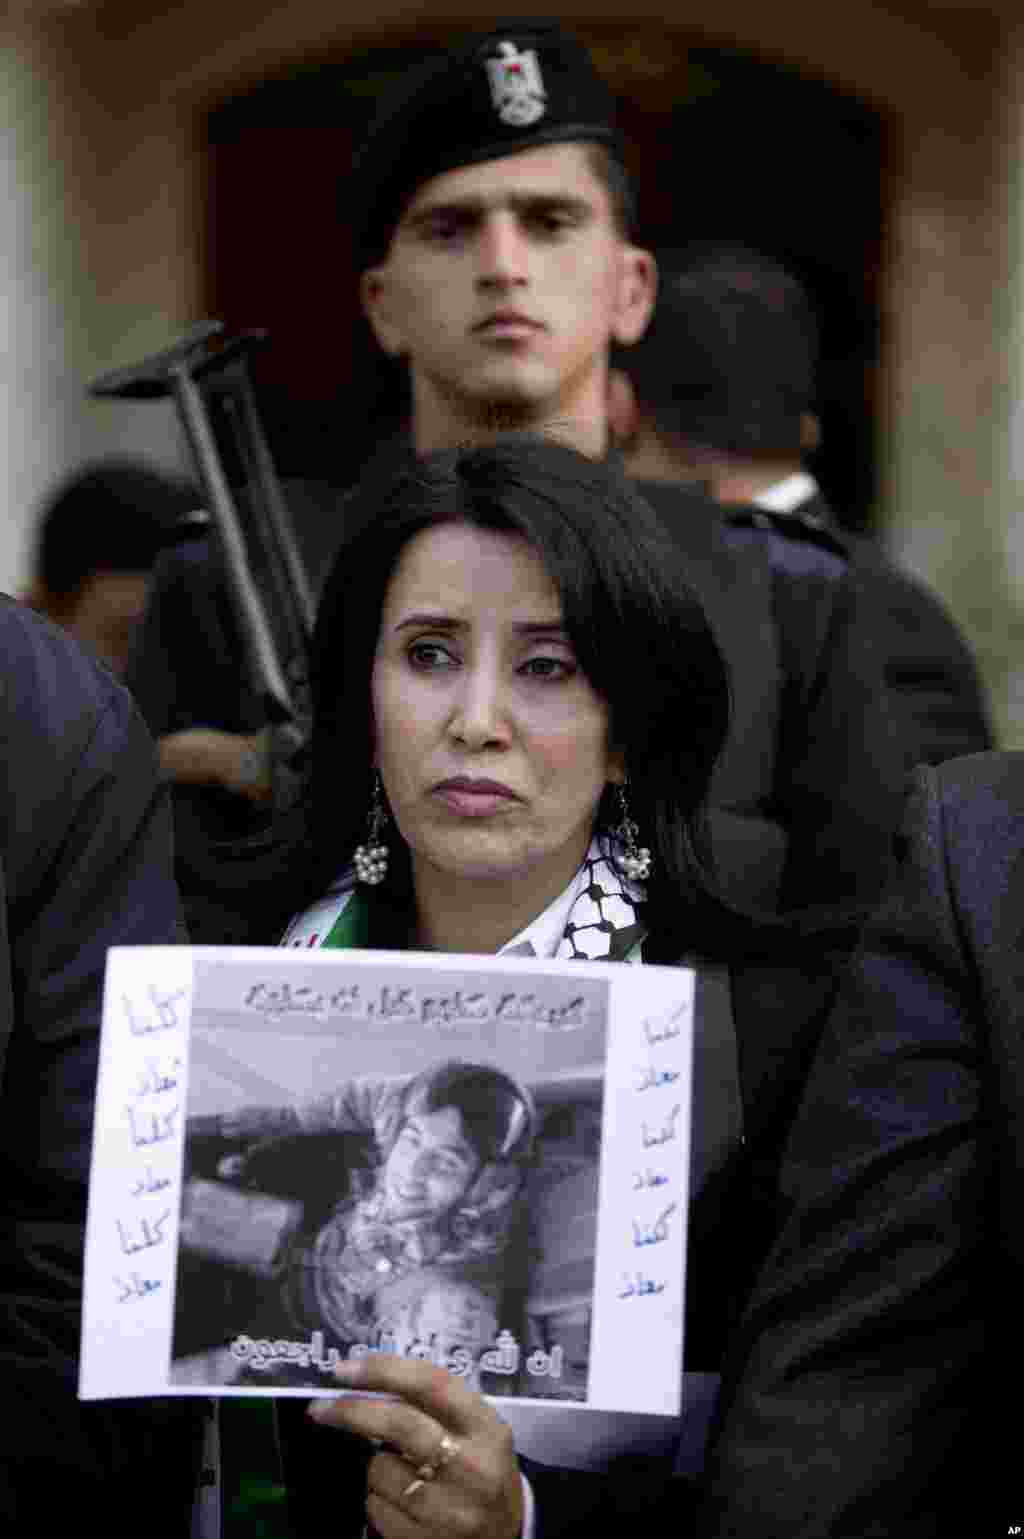 A Palestinian woman holds a poster with a picture of slain Jordanian pilot, Lt. Muath al-Kaseasbeh during a protest in front of the Jordanian embassy, in the West Bank City of Ramallah, Feb. 4, 2015.